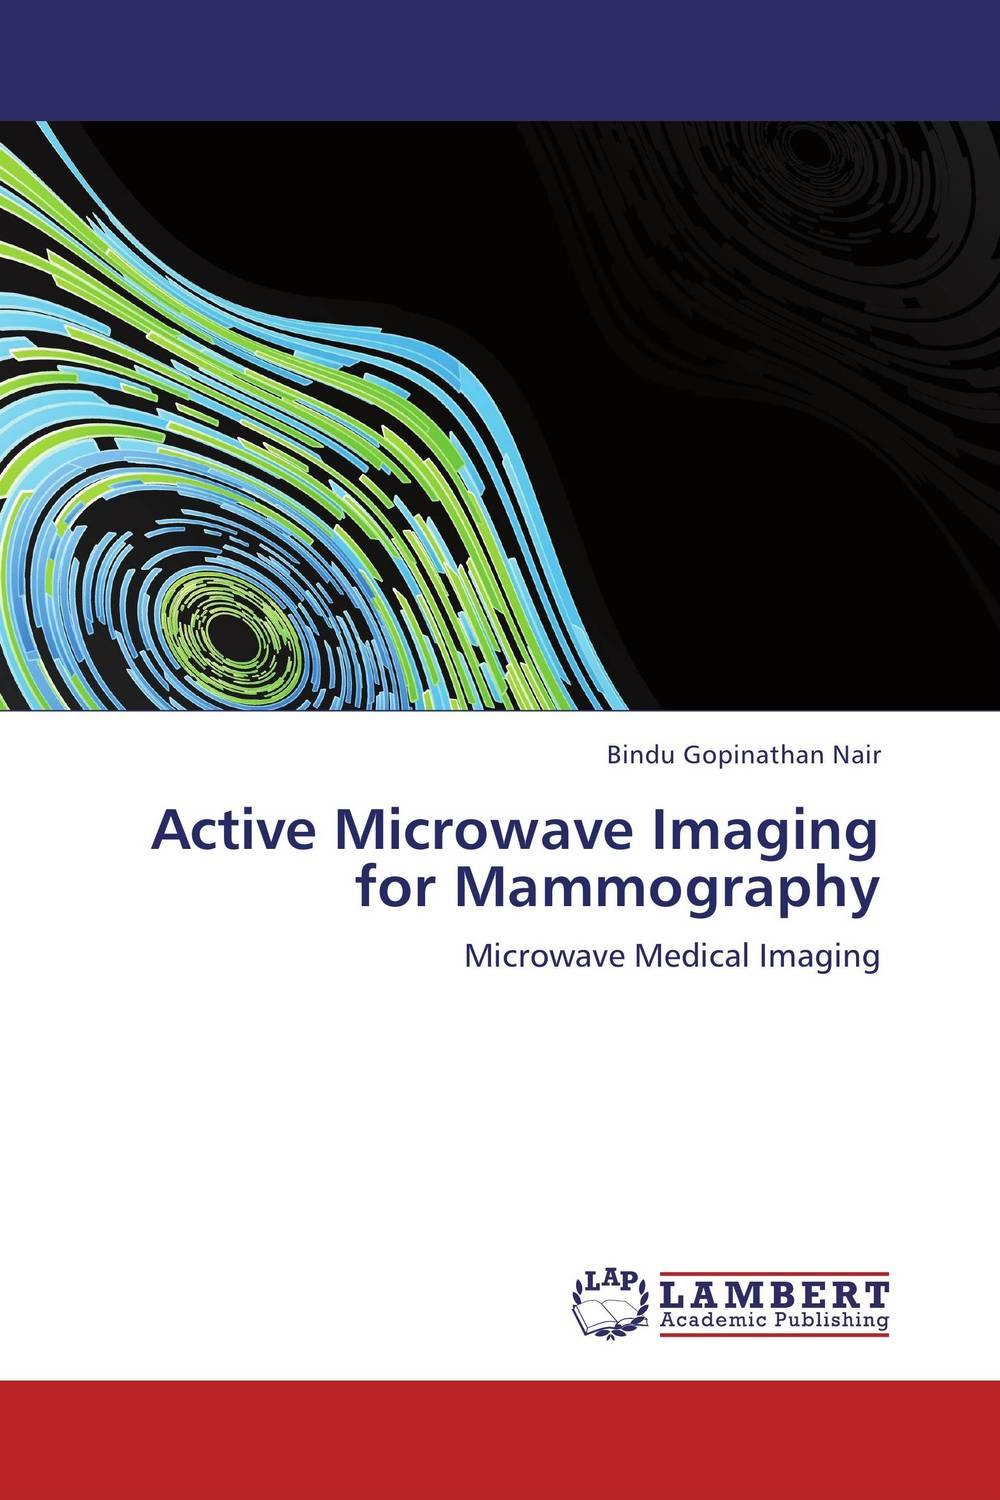 Active Microwave Imaging for Mammography breast cancer detection device for the breast check and breast cancer self exam